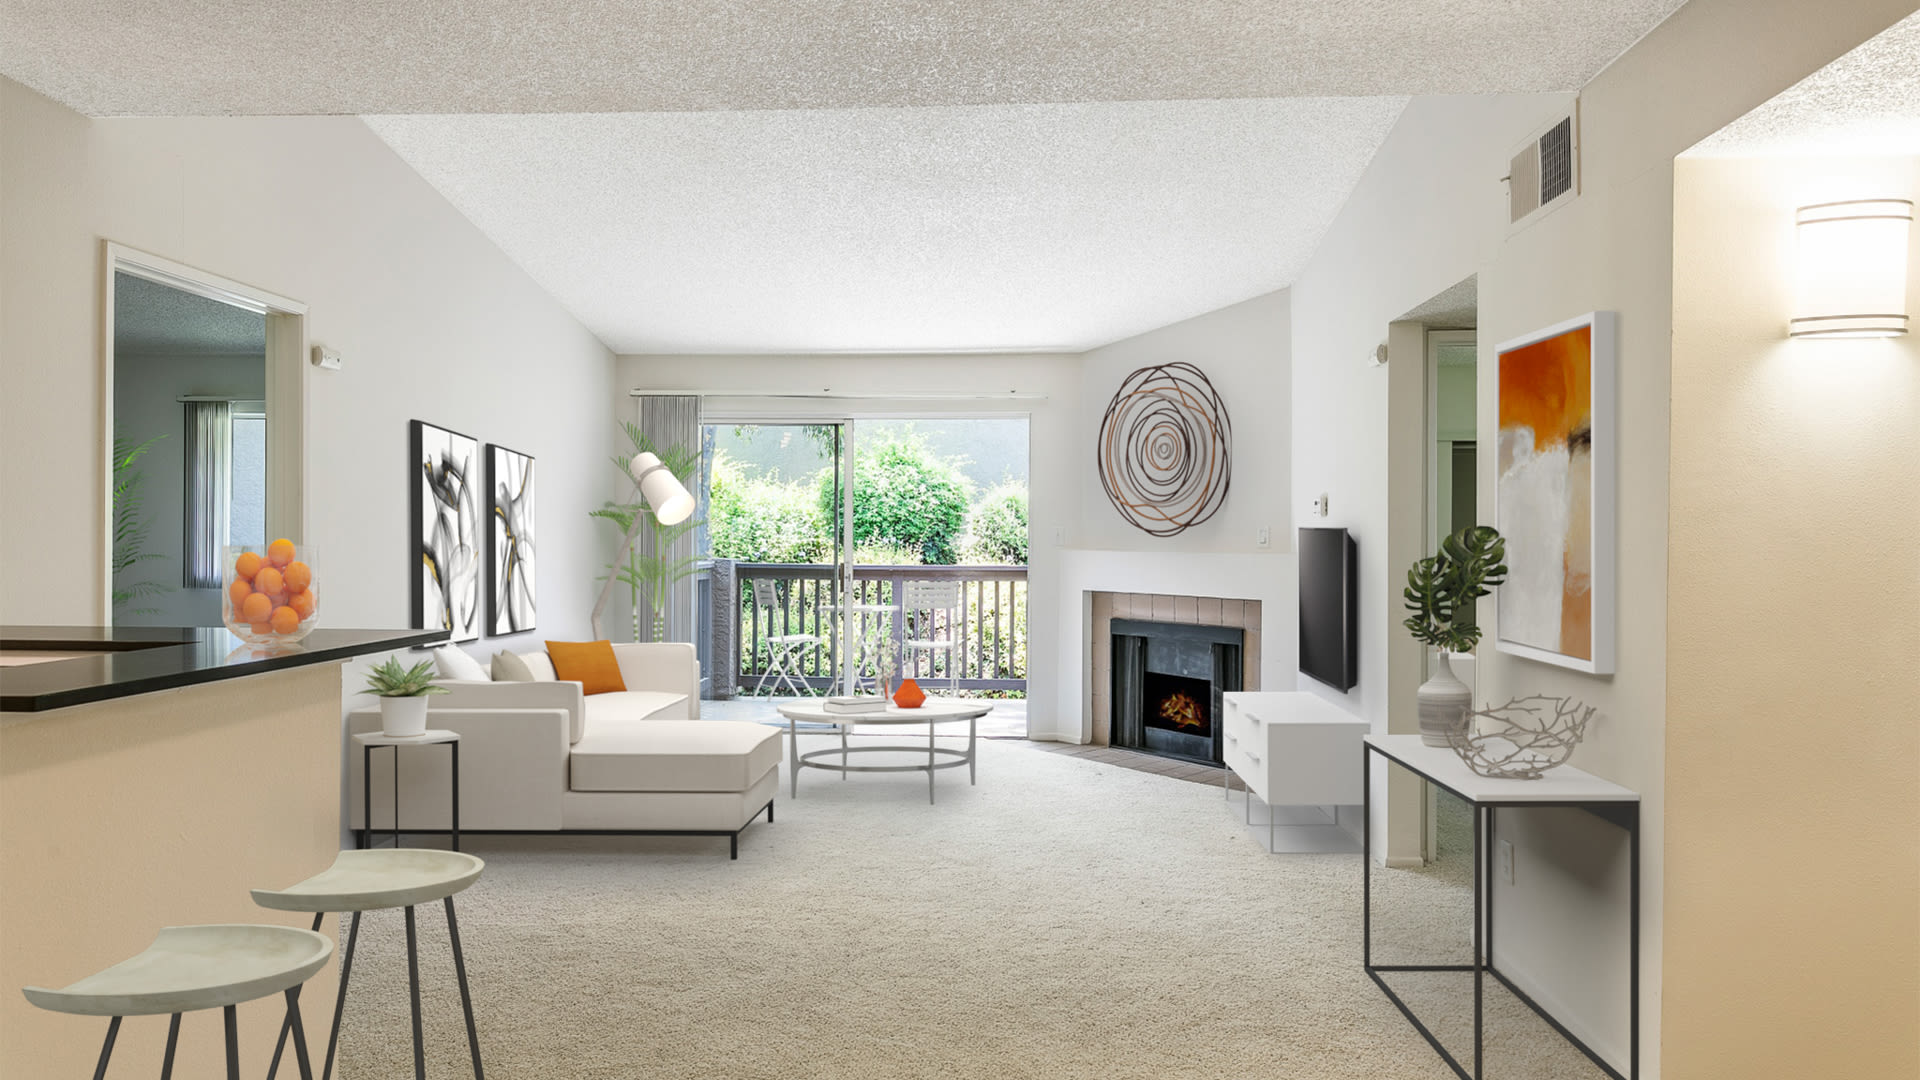 Hathaway Apartments - Carpeted Living Room with Fireplace and Balcony